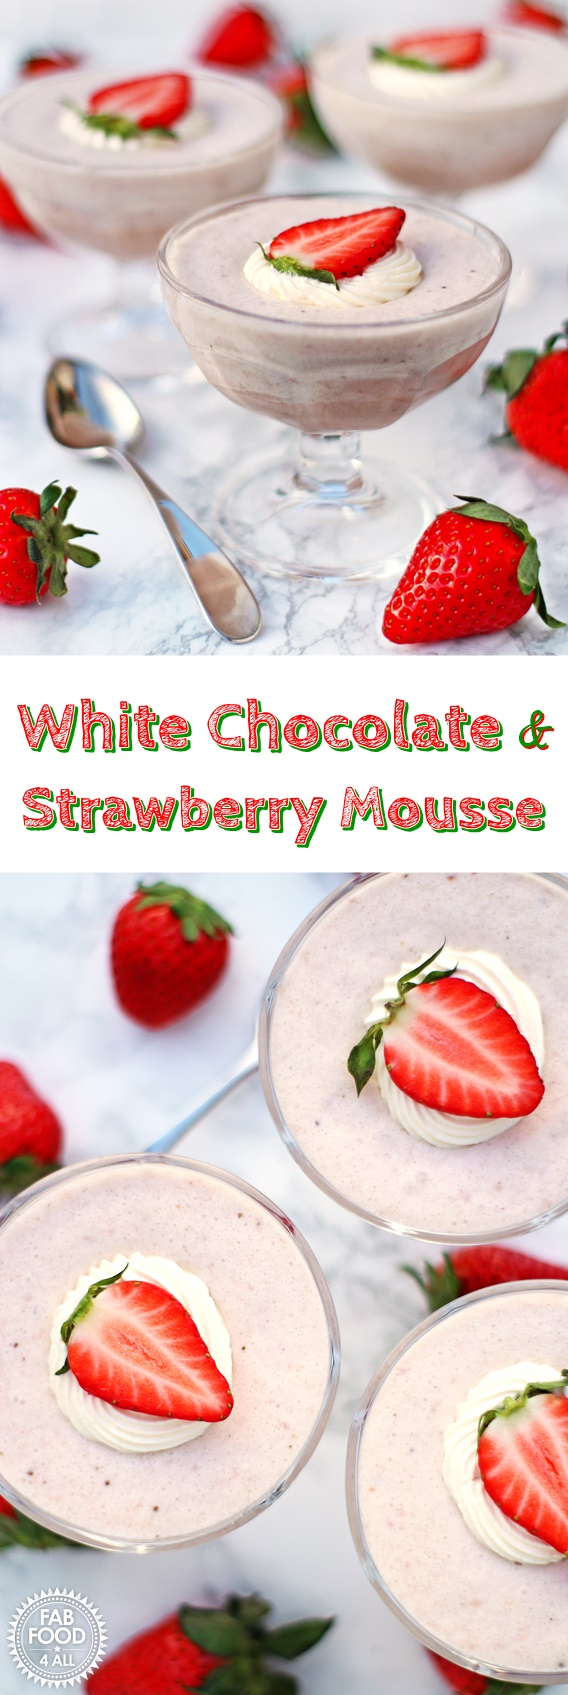 White Chocolate & Strawberry Mousse - Fab Food 4 All #mousse #strawberry #white chocolate #dessert #pudding